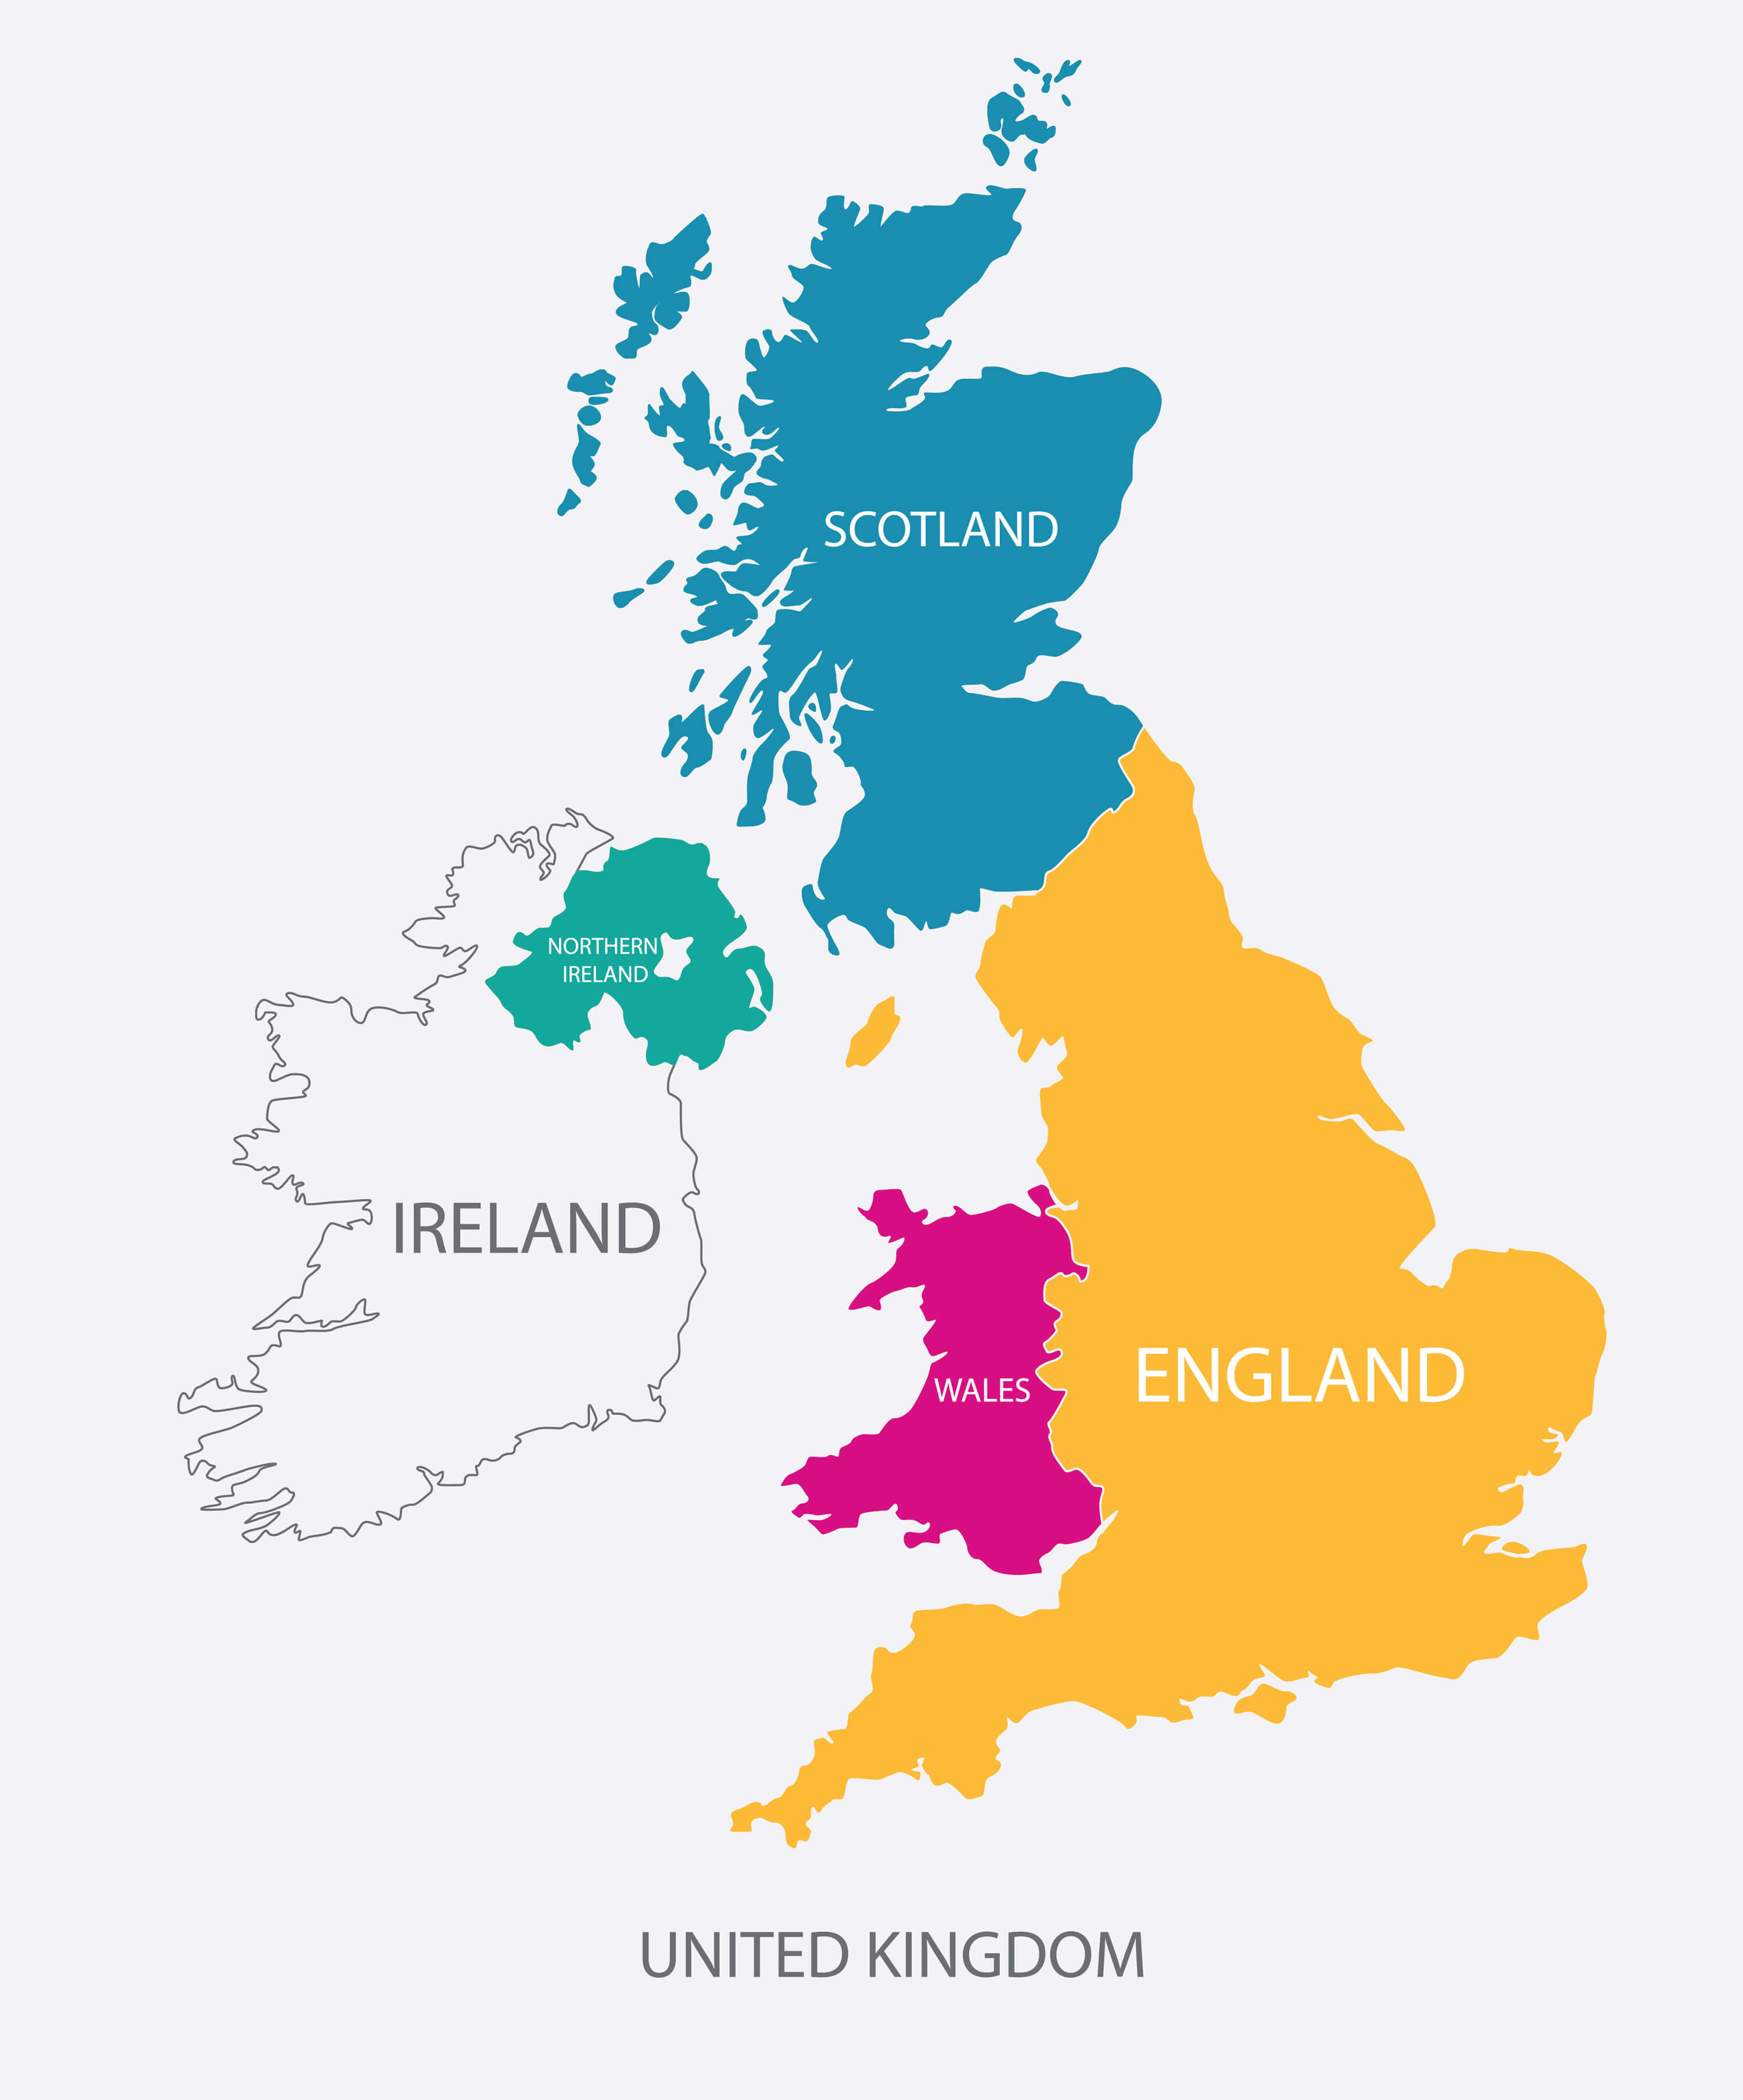 englands economy a part of the united Economy of the united kingdom 1 overview 2 cost of living 3 money the cost of living such us wages varies from one part of the uk to another generally it is more expensive to live in london and the south-east of england, and cheaper up north.